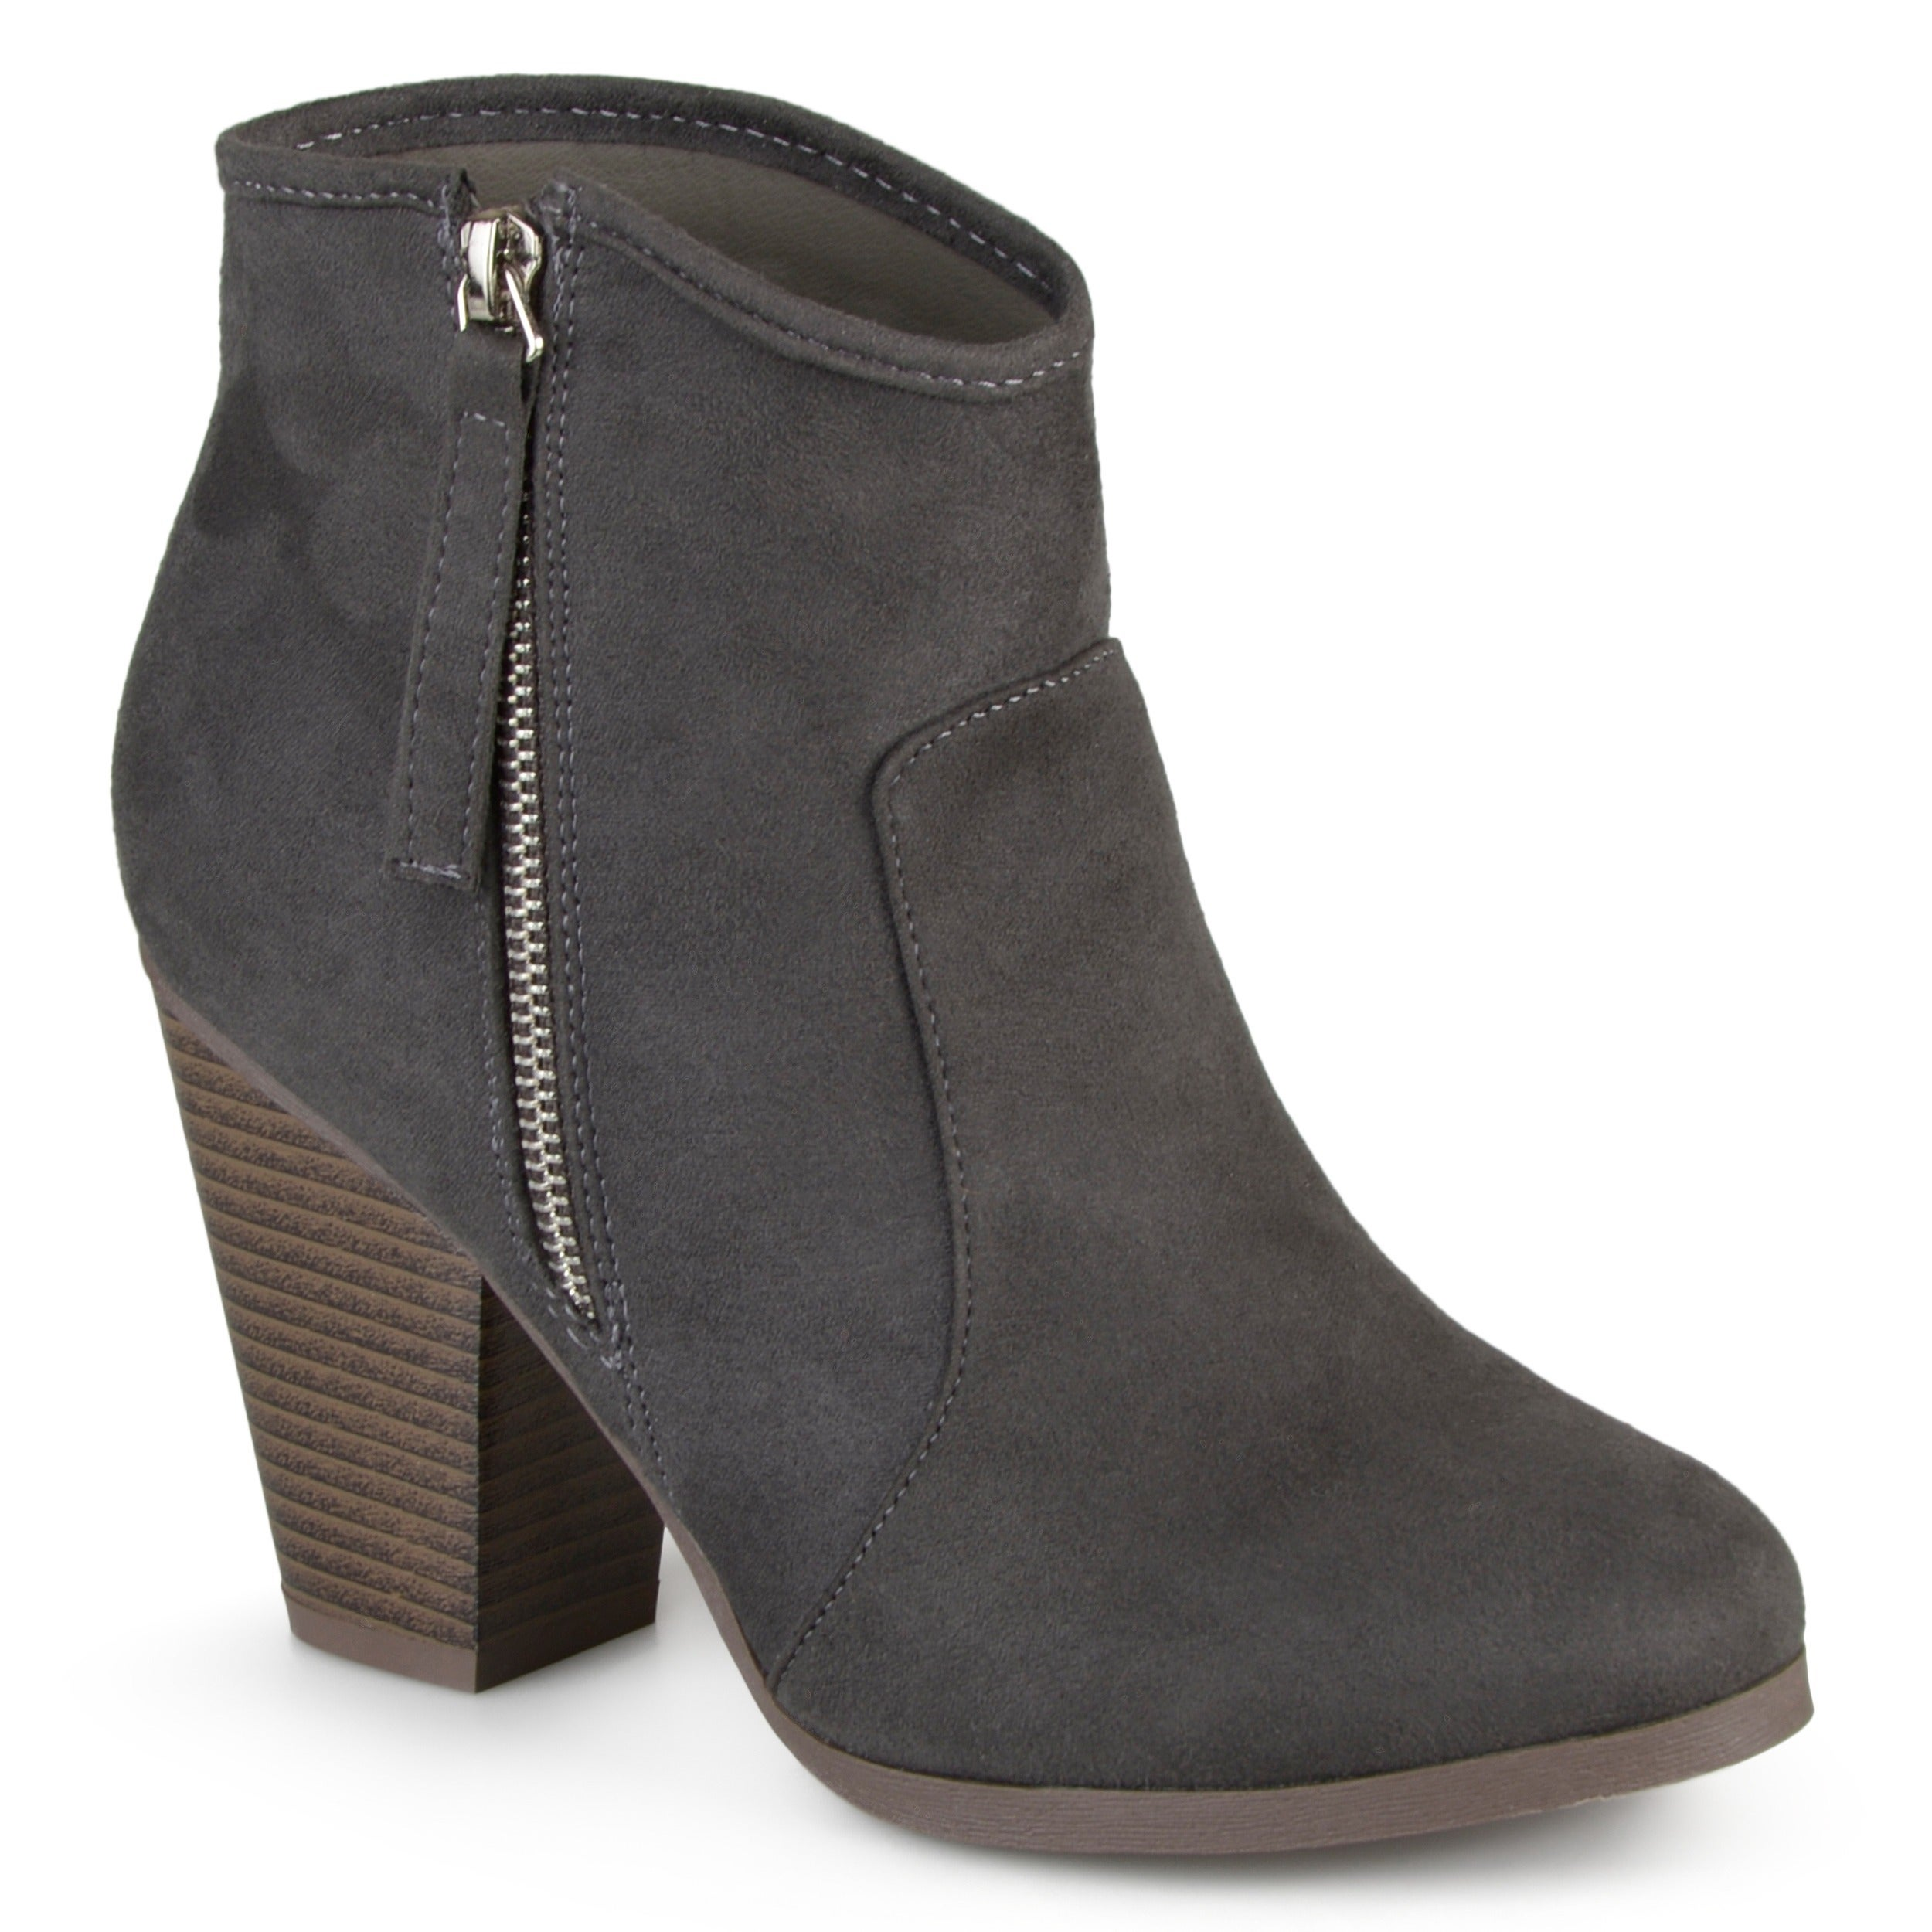 Shop Journee Collection Women s Link High Heel Faux Suede Ankle Boots - On  Sale - Free Shipping Today - Overstock - 10337952 7f9658110